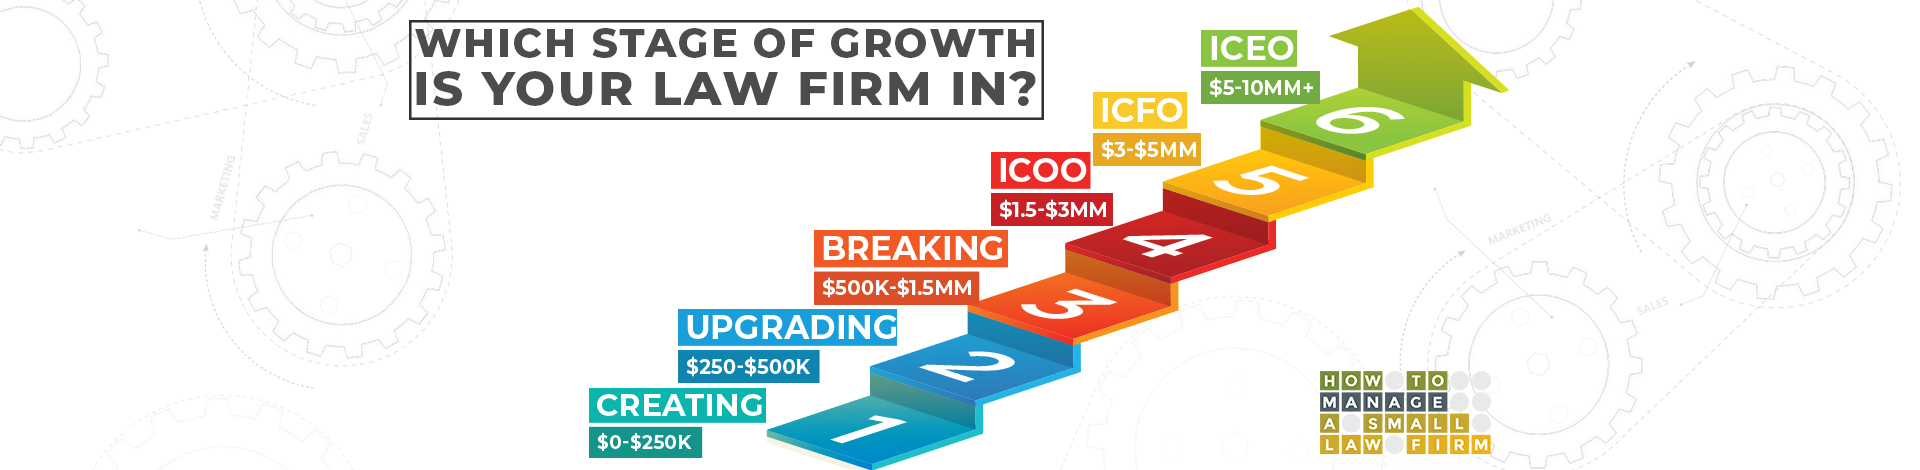 Which stage of growth is your law firm in? Six stages $0-$250k, $250k-$500k, $500k-$1.5MM, $1.5MM-$3MM, $3MM-$5MM, $5MM-$10MM+